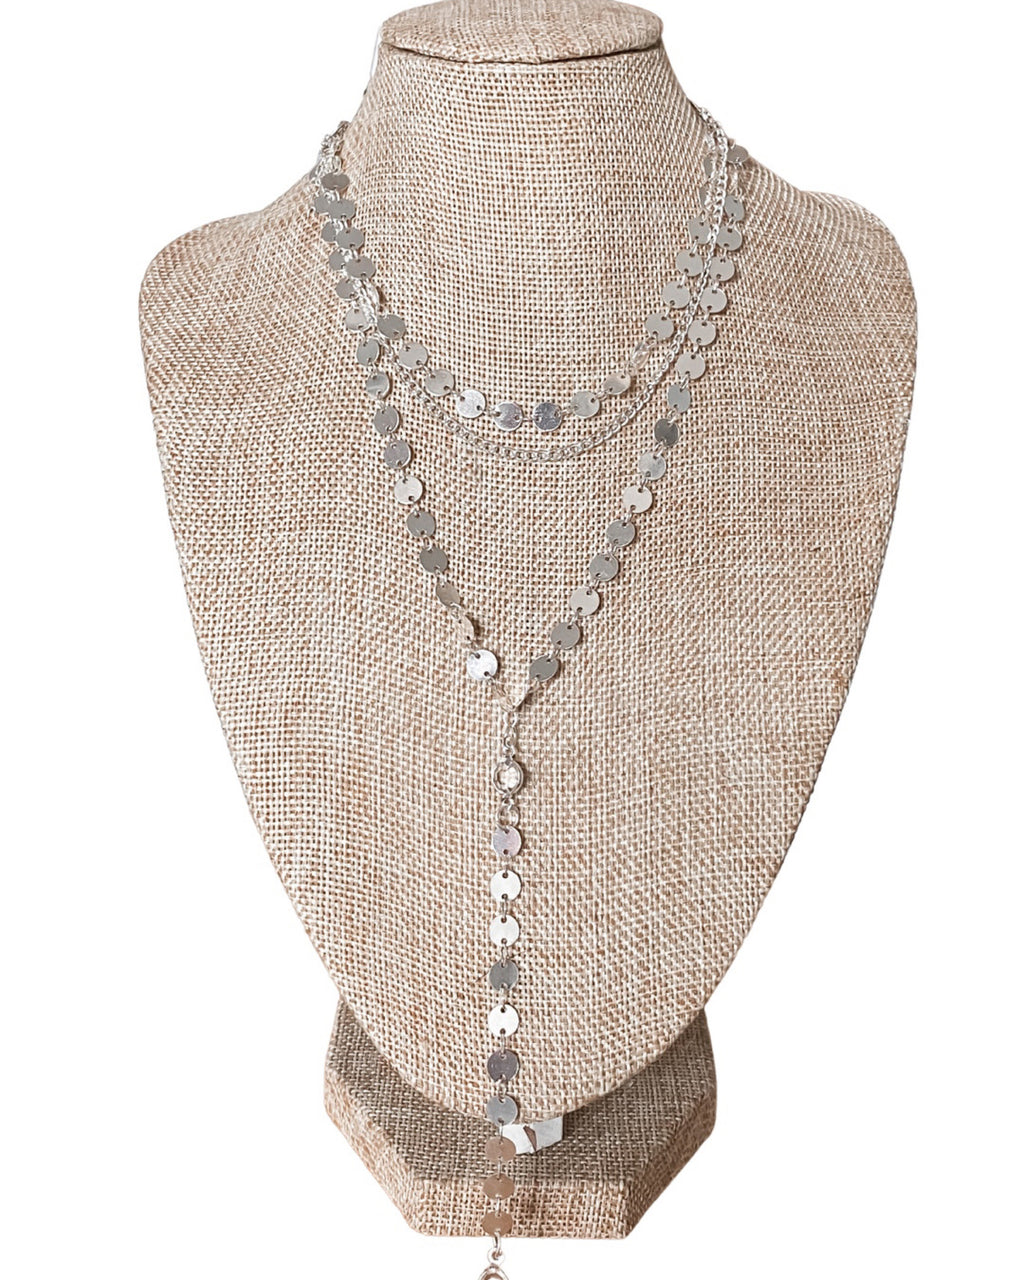 Zoey Layered Necklace - Silver